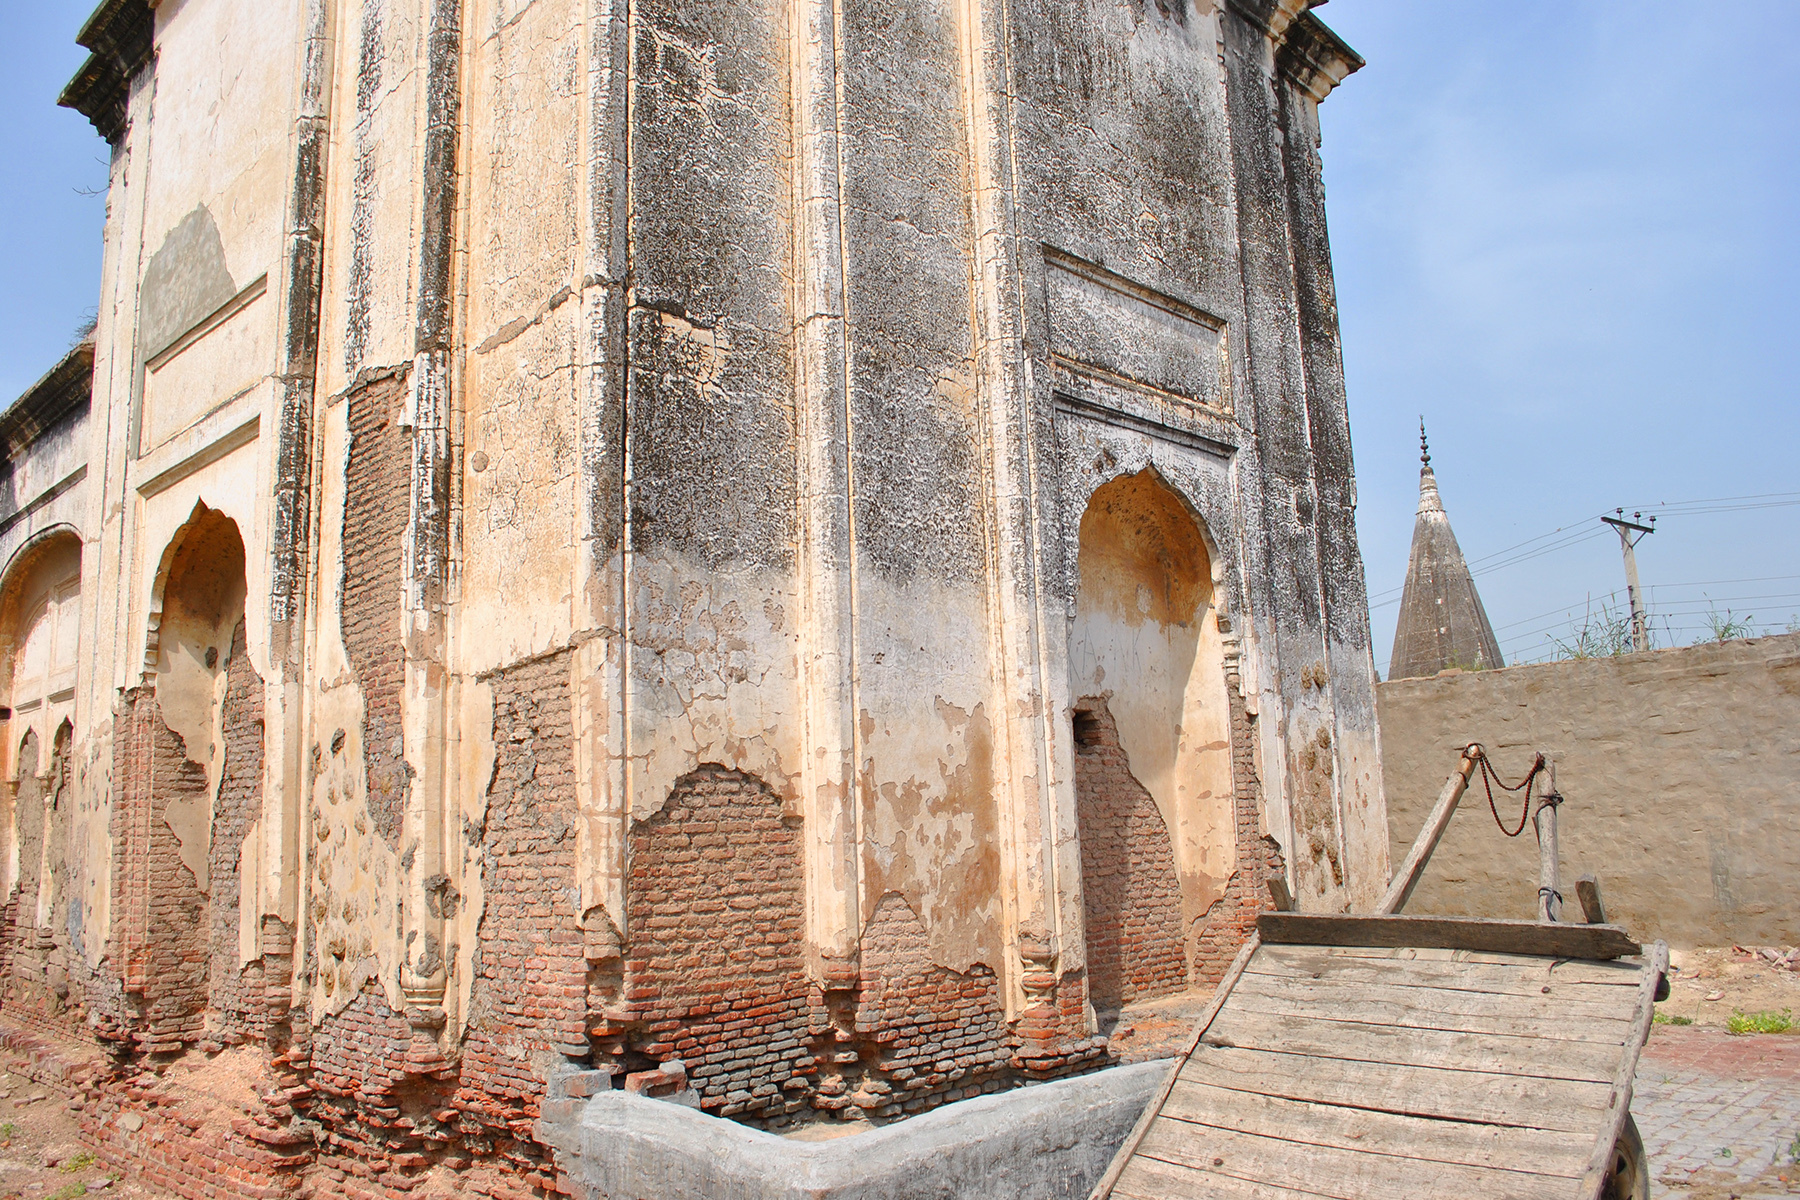 There's no hope for the restoration of these sites which are sacred to some people.